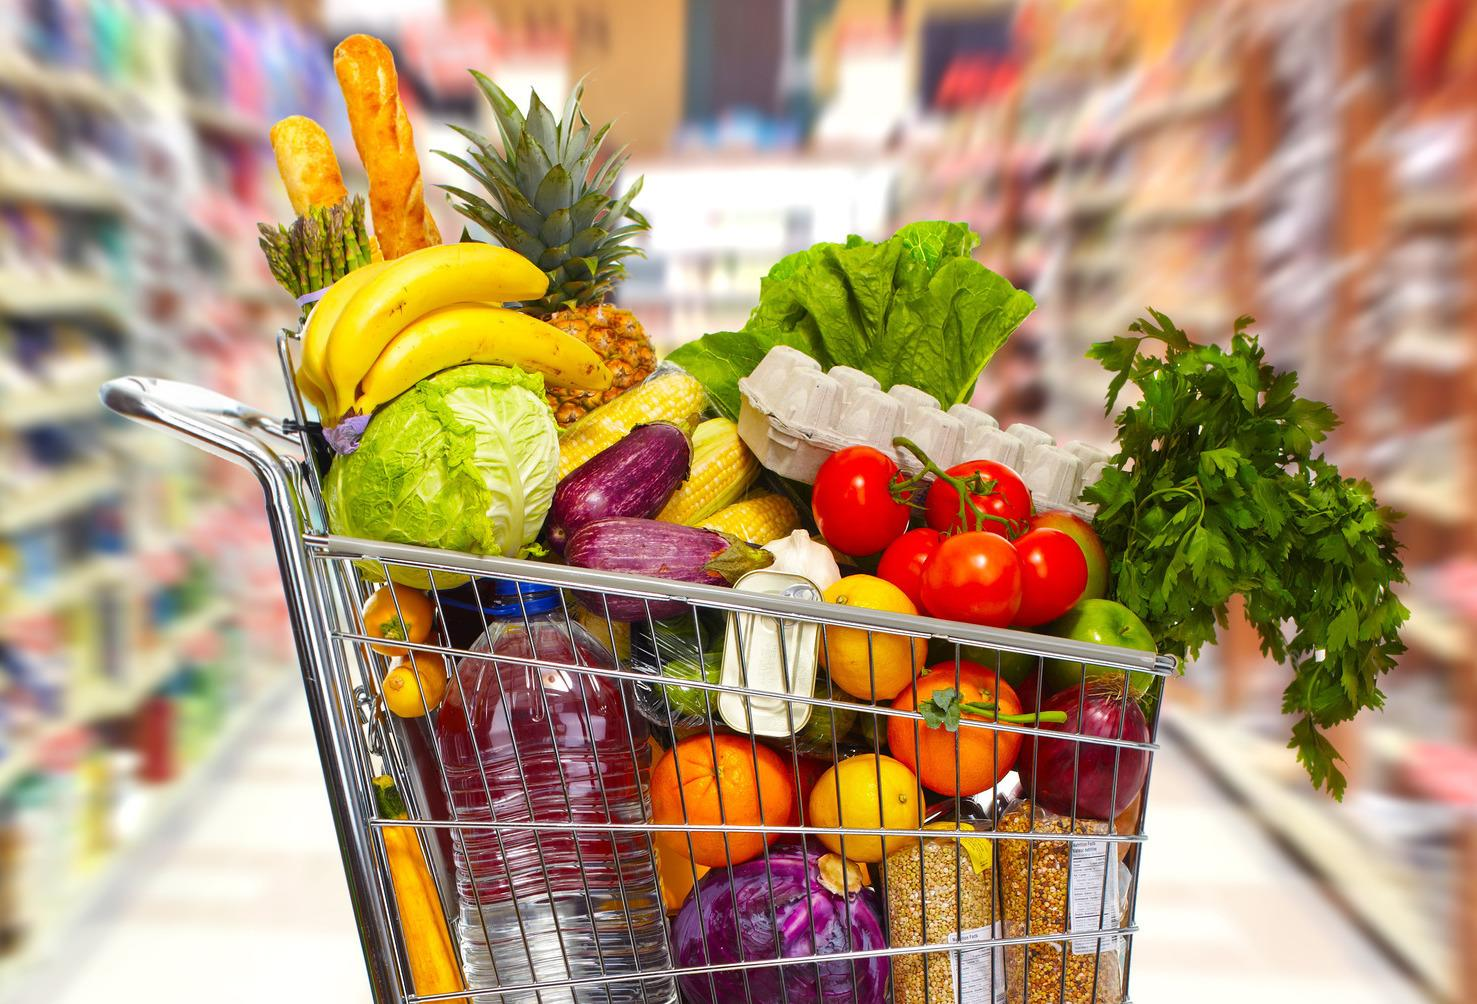 """<span style=""""color:rgb(0, 0, 0);font-family:helvetica, arial;"""">Shopping carts are getting bigger because research shows that consumers buy more when they can fit more in the cart. Multi-packs are also getting bigger, because the more people buy, the more they tend to consume. If you used to buy a six-pack of coke and drink six cans a week but now buy a 12-pack because that's the new standard size, you're probably going to start drinking 12 cans a week, Jeff Weidauer, former supermarket executive and vice president of marketing for retail services firm Vestcom, told</span>Reader's Digest<span style=""""color:rgb(0, 0, 0);font-family:helvetica, arial;"""">.</span><br style=""""color:rgb(0, 0, 0);font-family:helvetica, arial;""""/> <span style=""""color:rgb(0, 0, 0);font-family:helvetica, arial;"""">Customers think that when they buy in bulk, they get a better deal. But that's not always the case. Work it out yourself, and only buy as much food as you can eat before it goes off.</span>"""